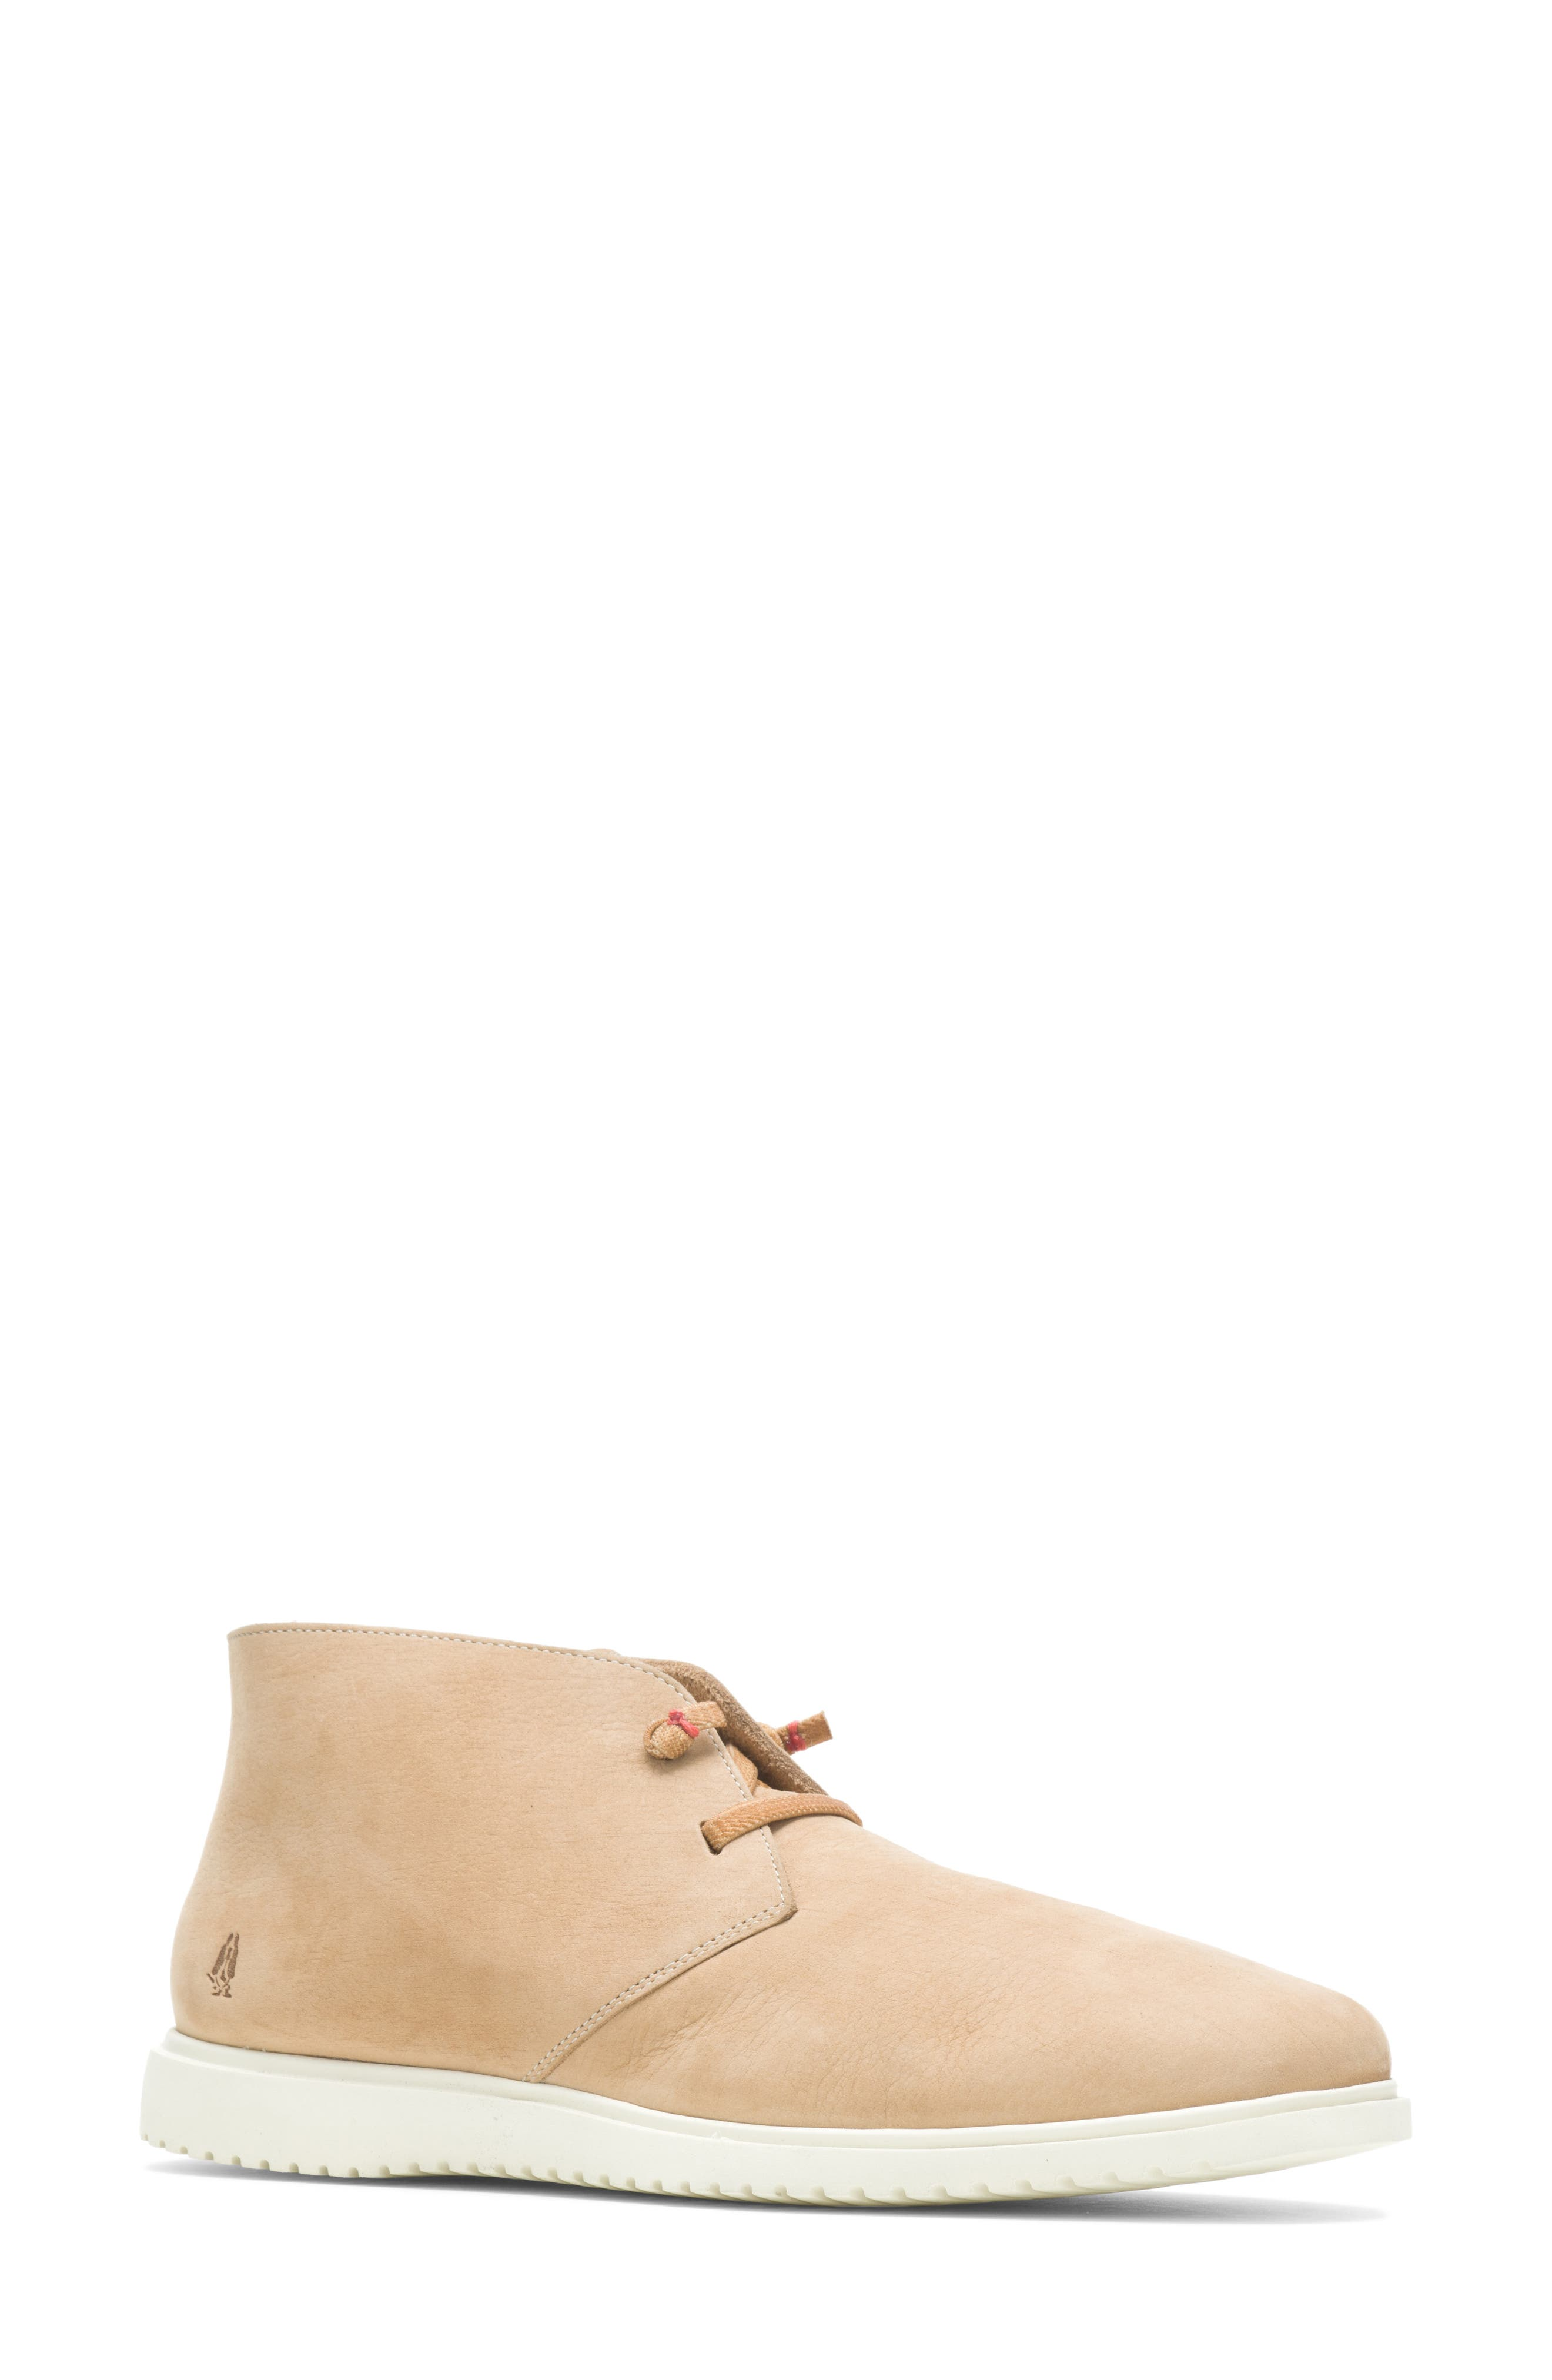 The Everyday Water Resistant Chukka Boot